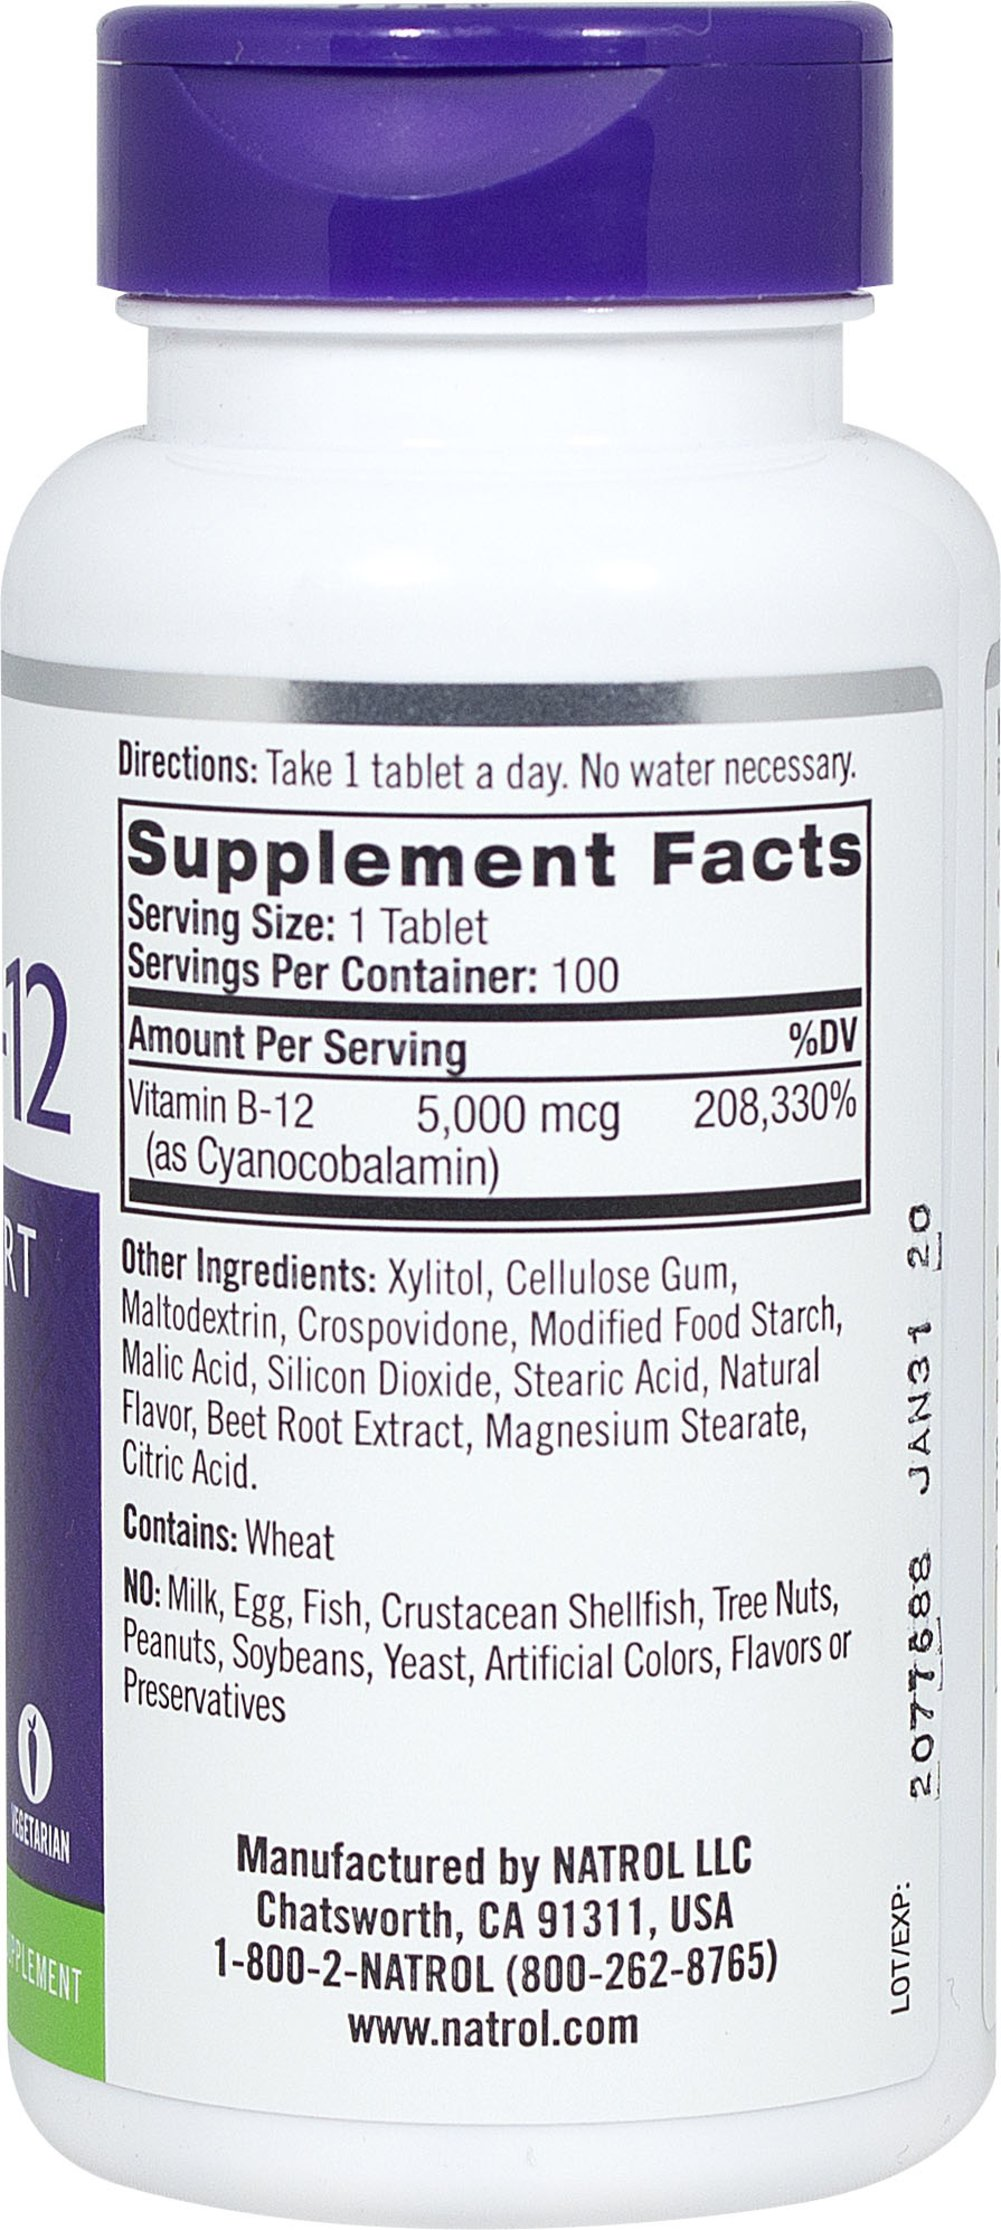 Vitamin B-12 5000 mcg Fast Dissolve Thumbnail Alternate Bottle View